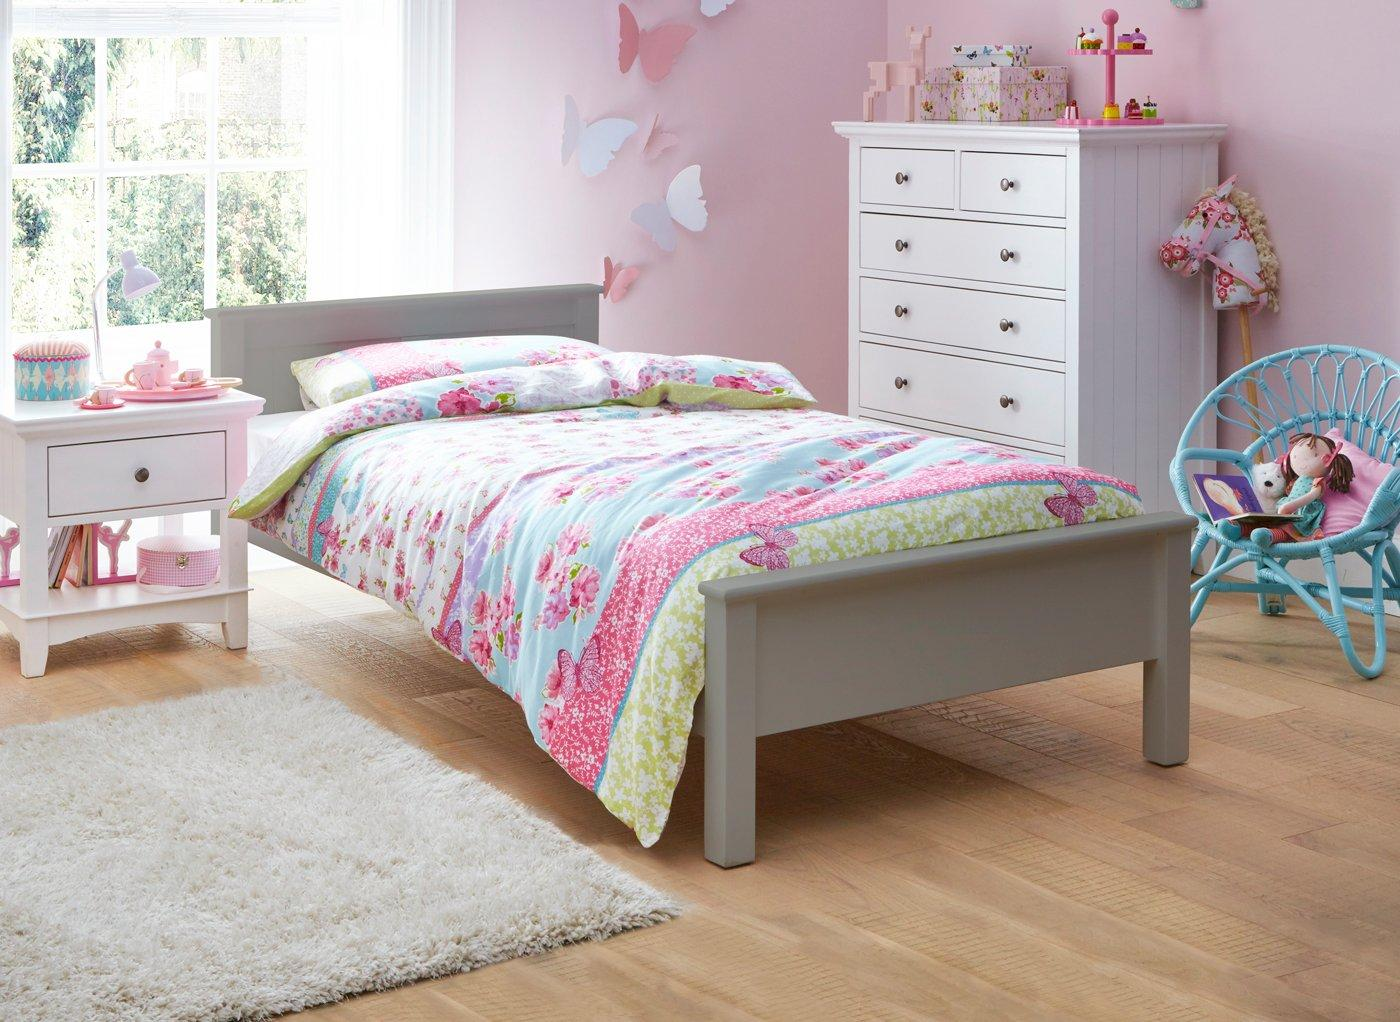 Kids Beds Kids Bed Frames With Free Delivery Dreams